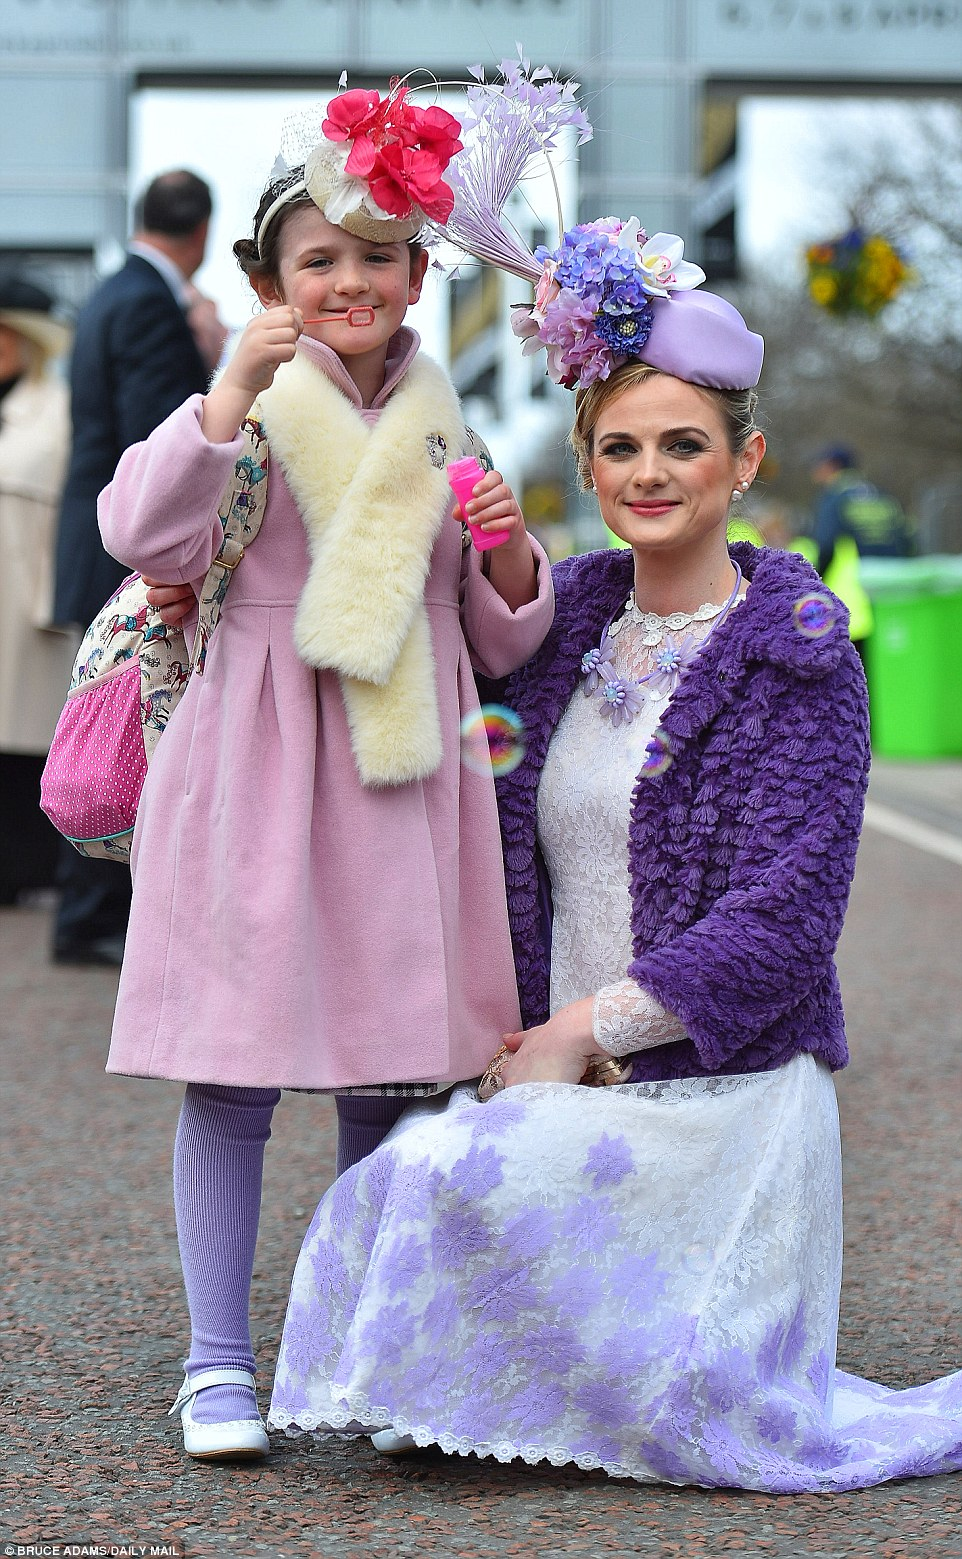 Linda Morrison and her nine-year-old daughter Poppy from Scotland looked delightful in their purple outfits and fascinators